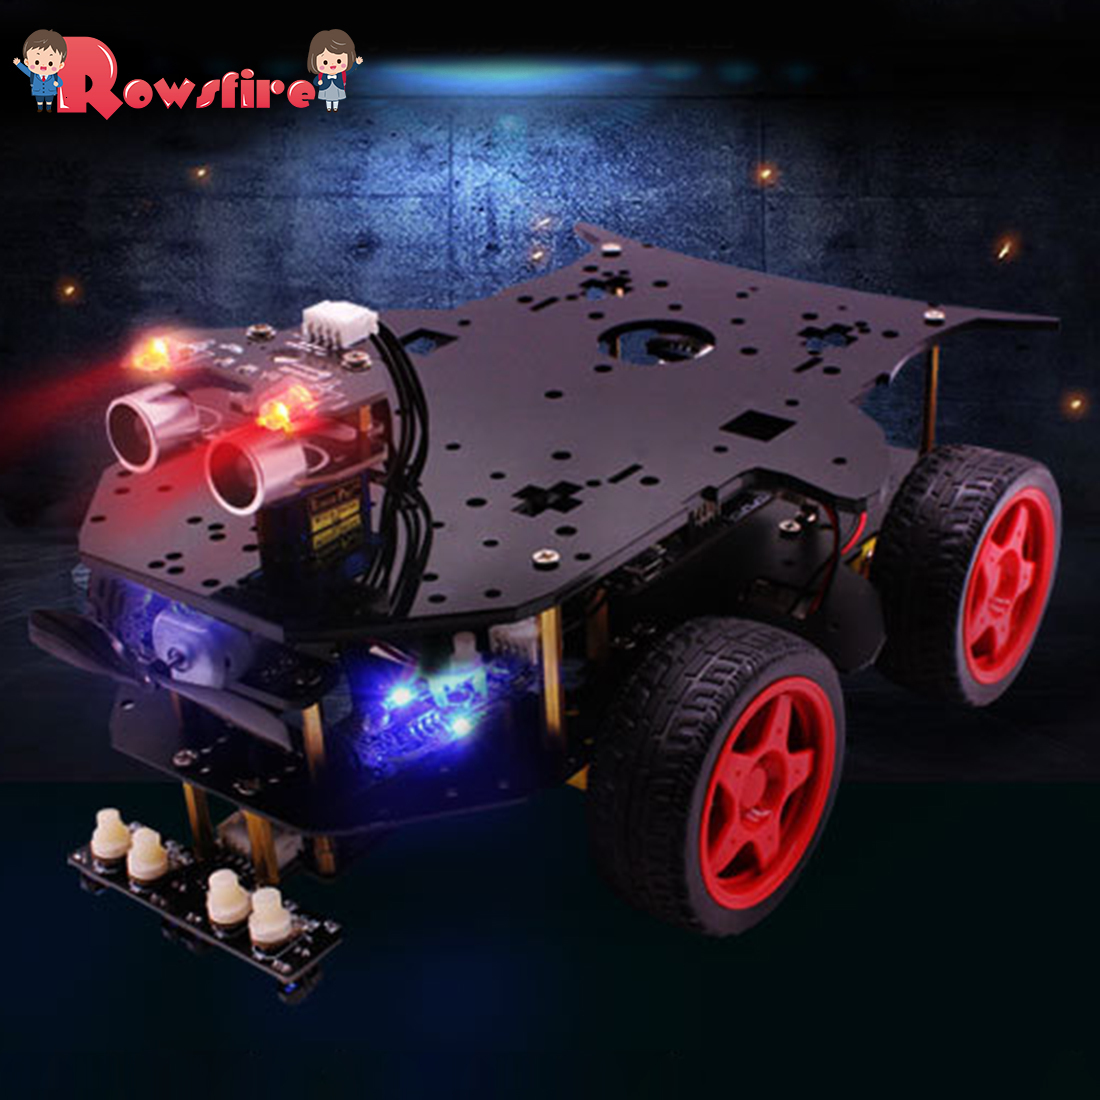 Robot Car 4WD Programming Stem Education Robot Kit Toys With Tutorial & Open Source Code For Arduino Without Battery